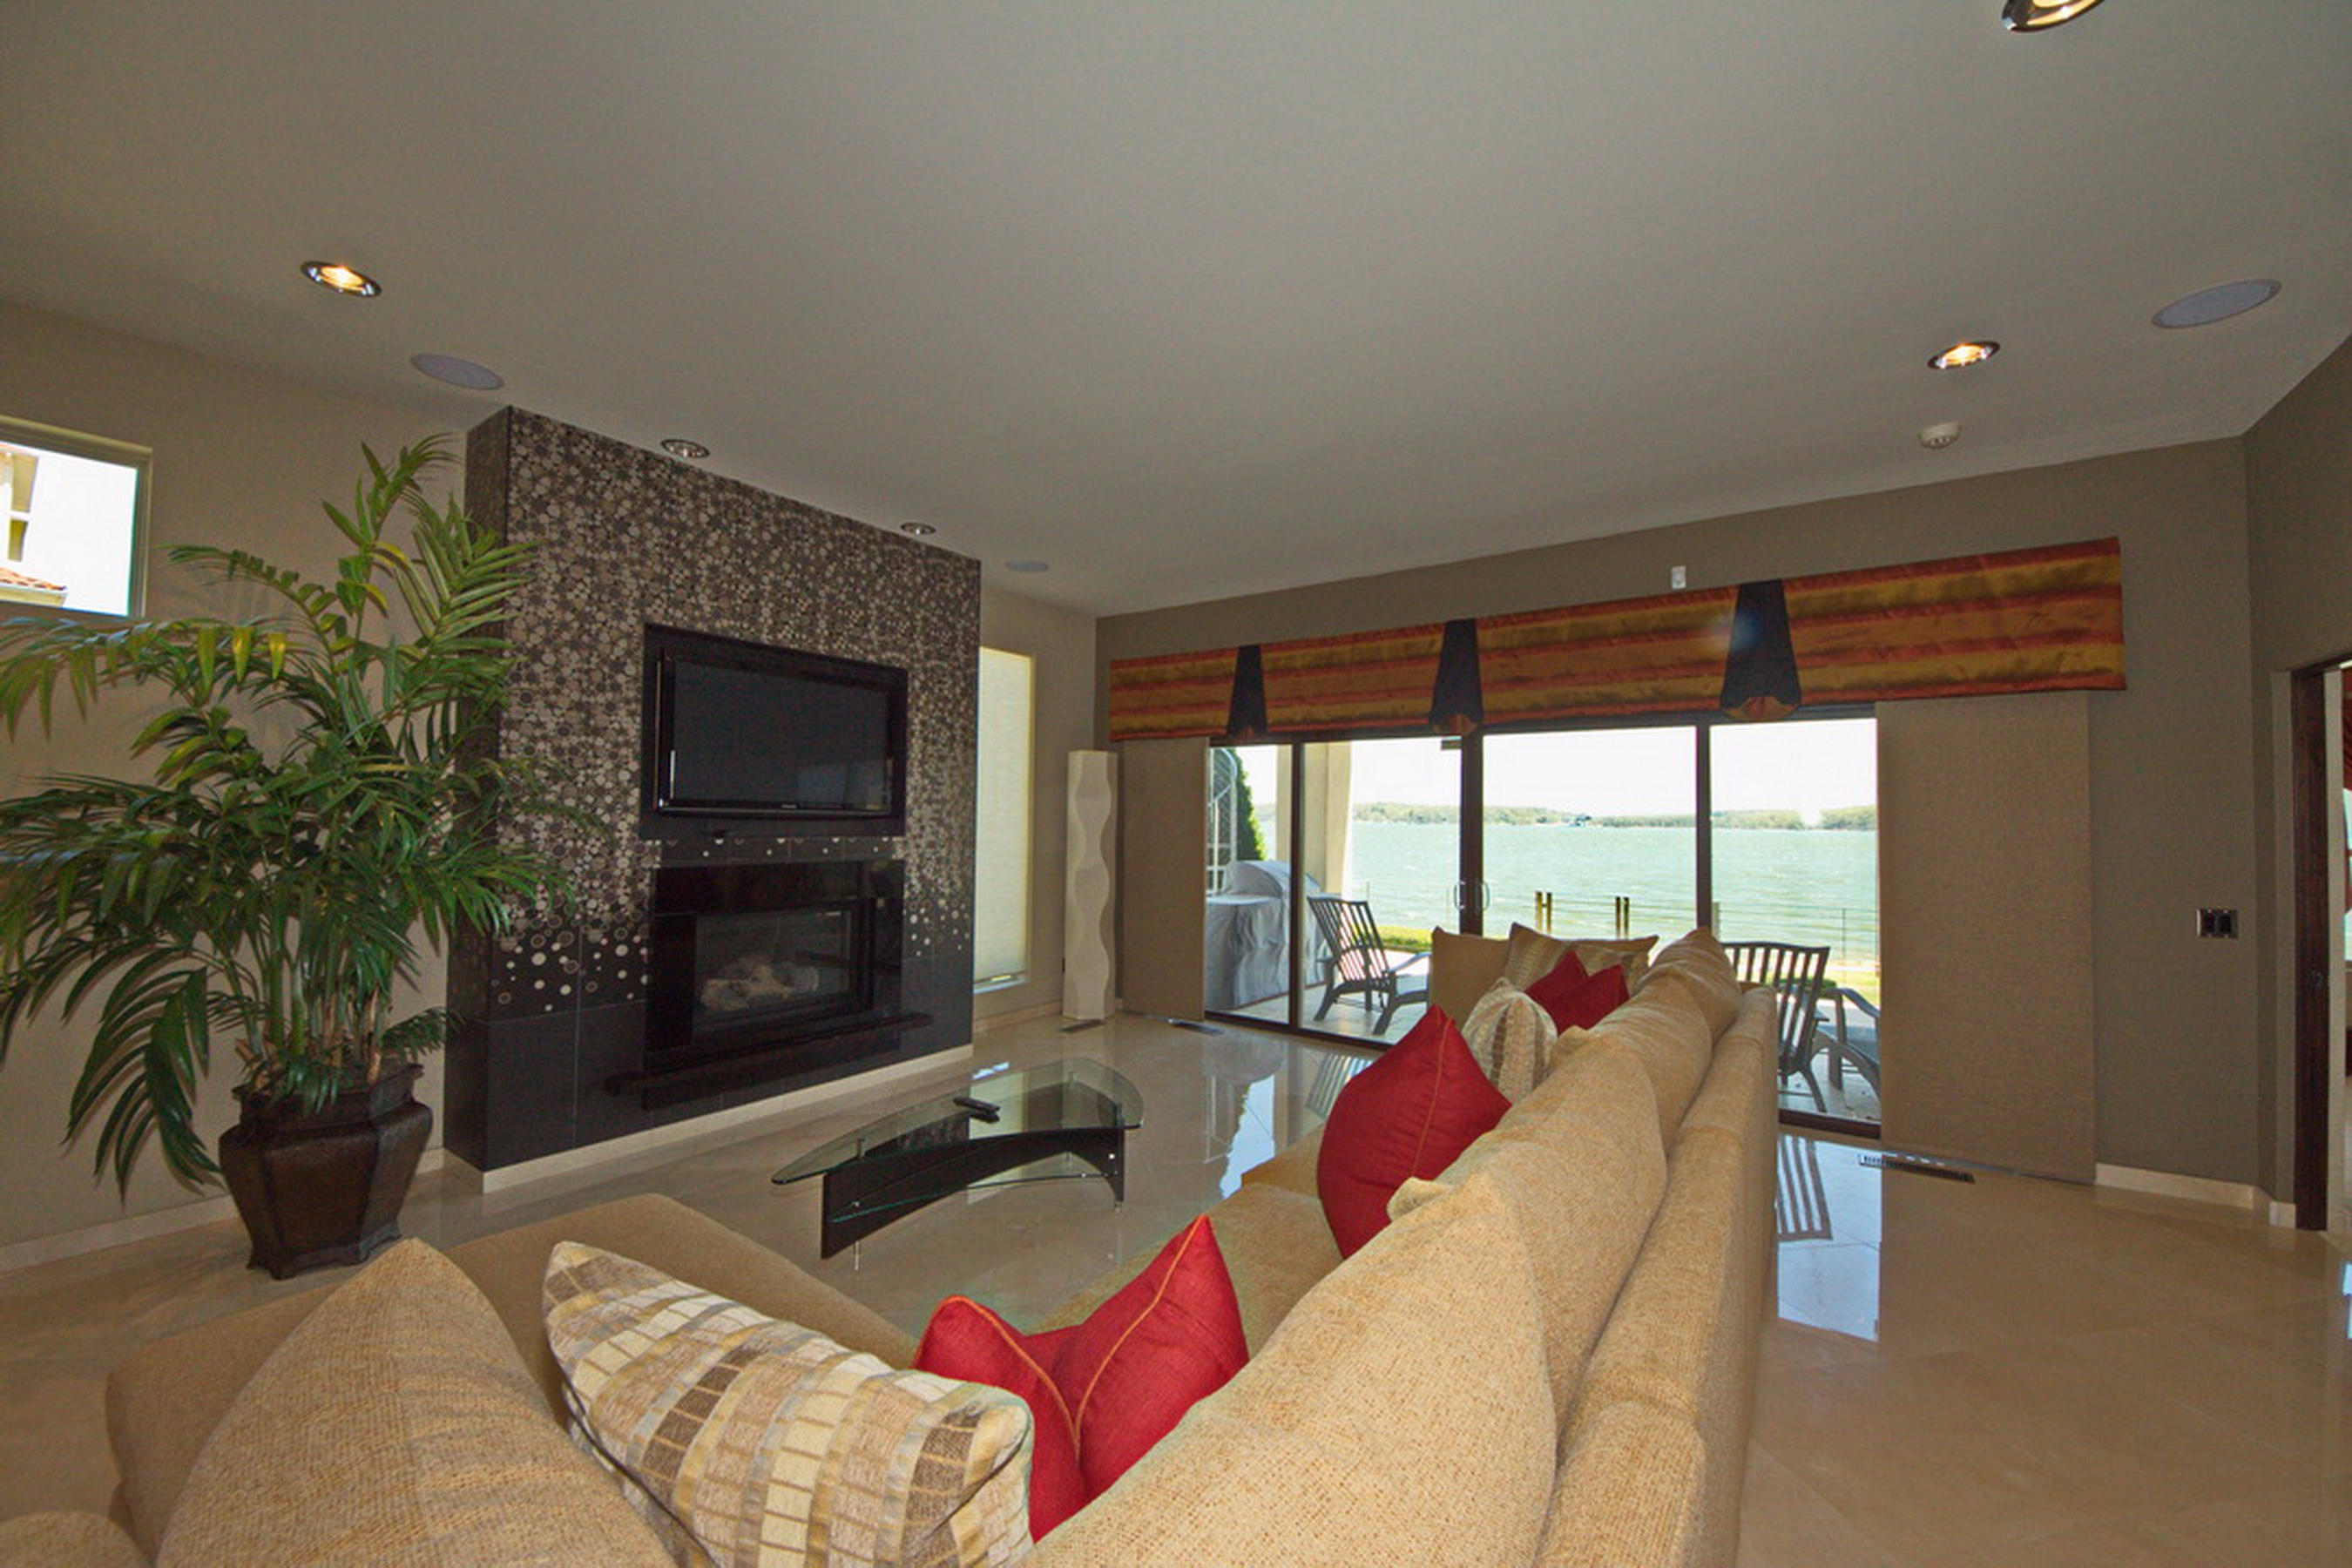 25-Ll Living-Fire Place-View-Patio